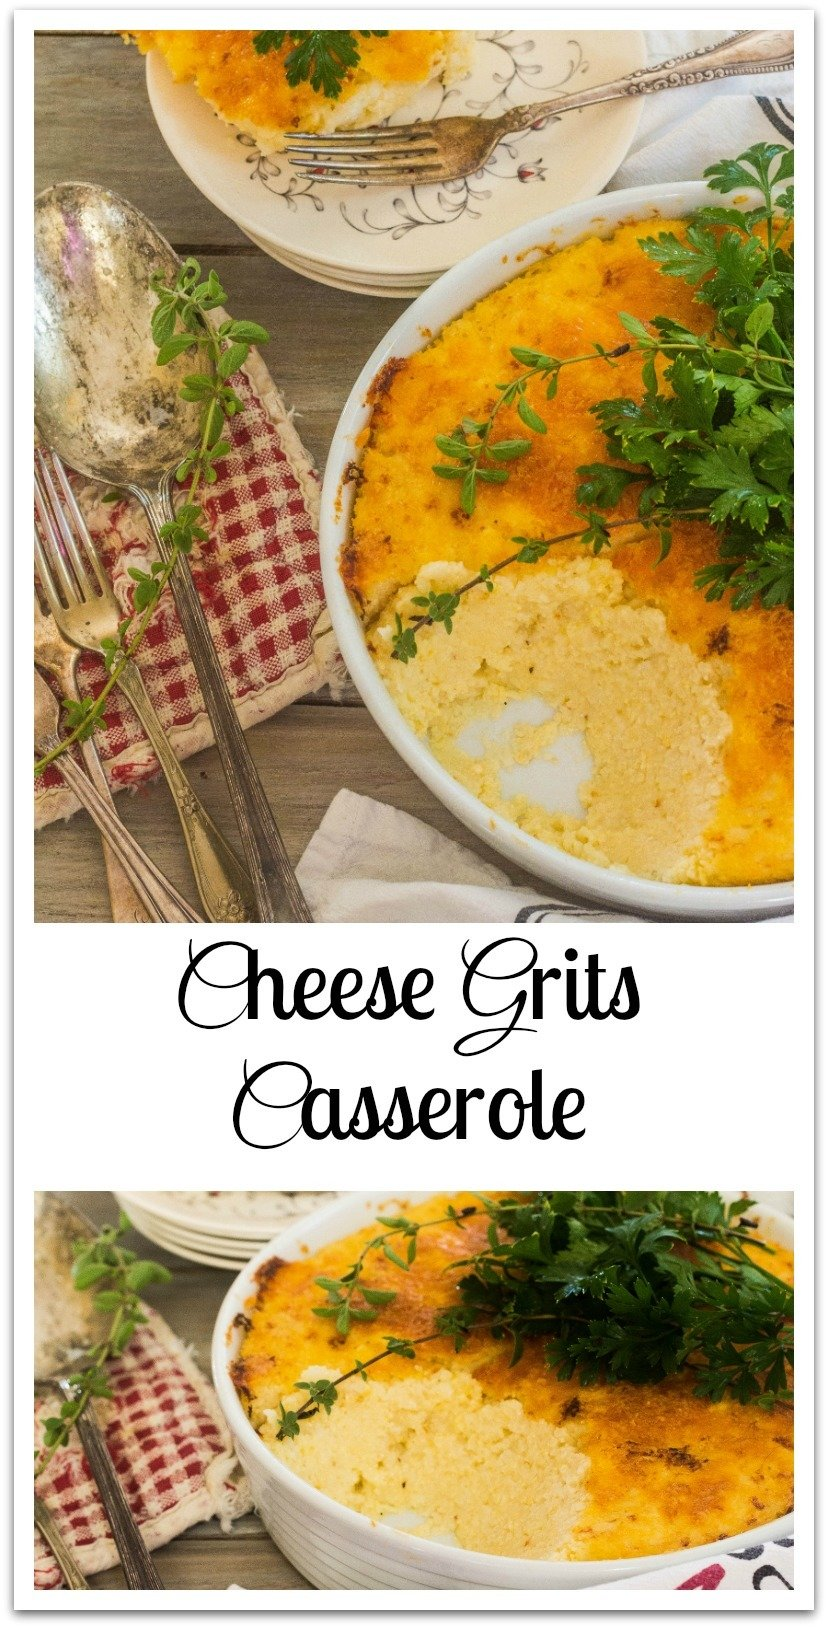 The original post was published in March 2011. I didn't change the recipe ingredients.  They were then and still remain, perfect. #CheesyGrits #Casserole